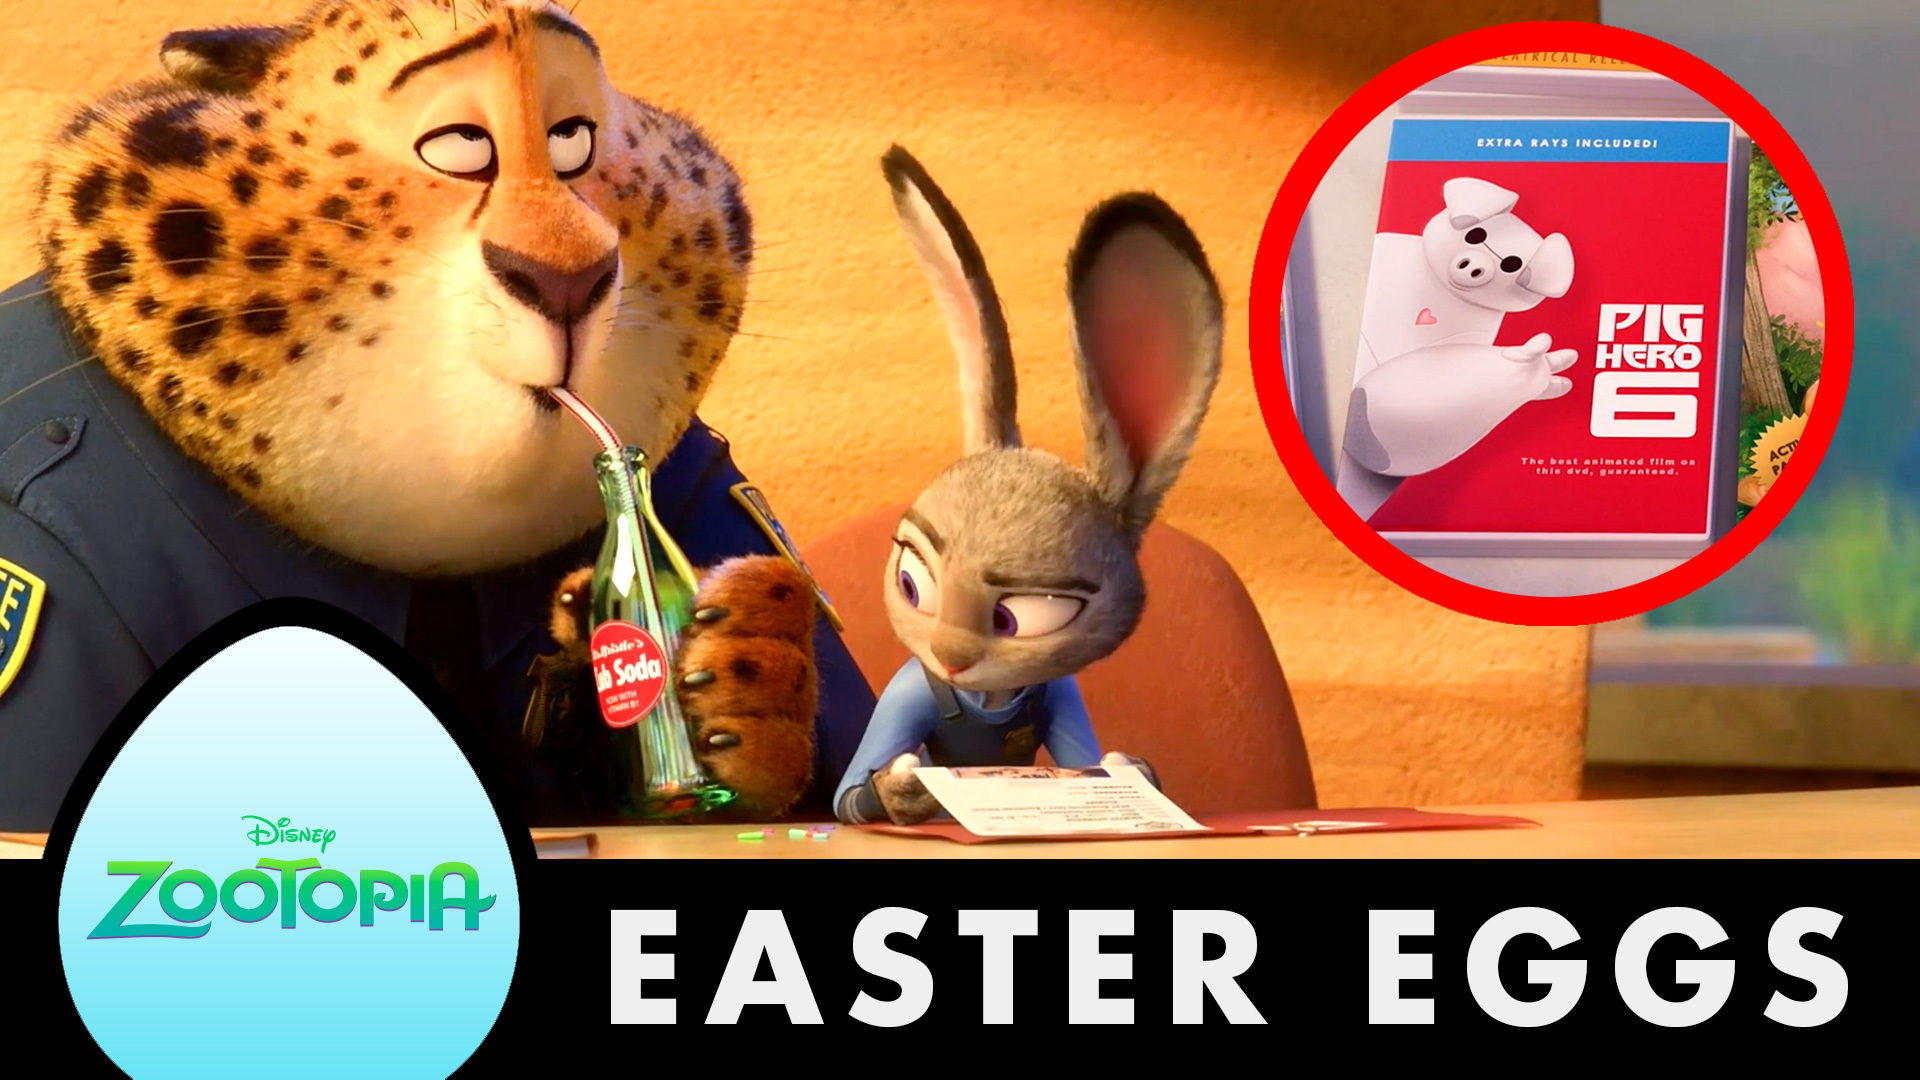 Zootopia   10 Awesome Hidden Secrets and Easter Eggs